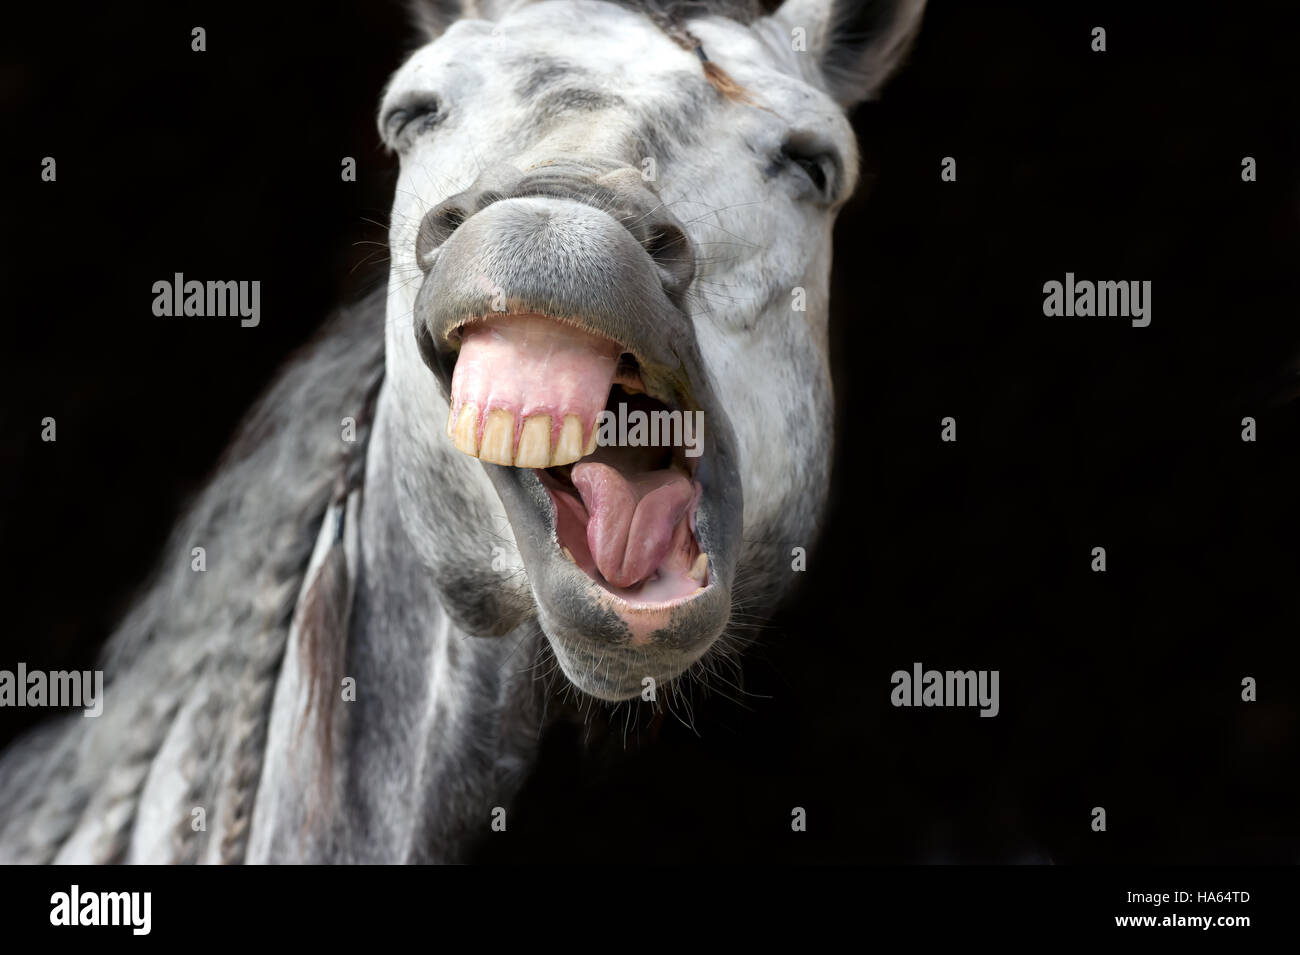 Funny animal is a white horse laughing his funny face off. - Stock Image